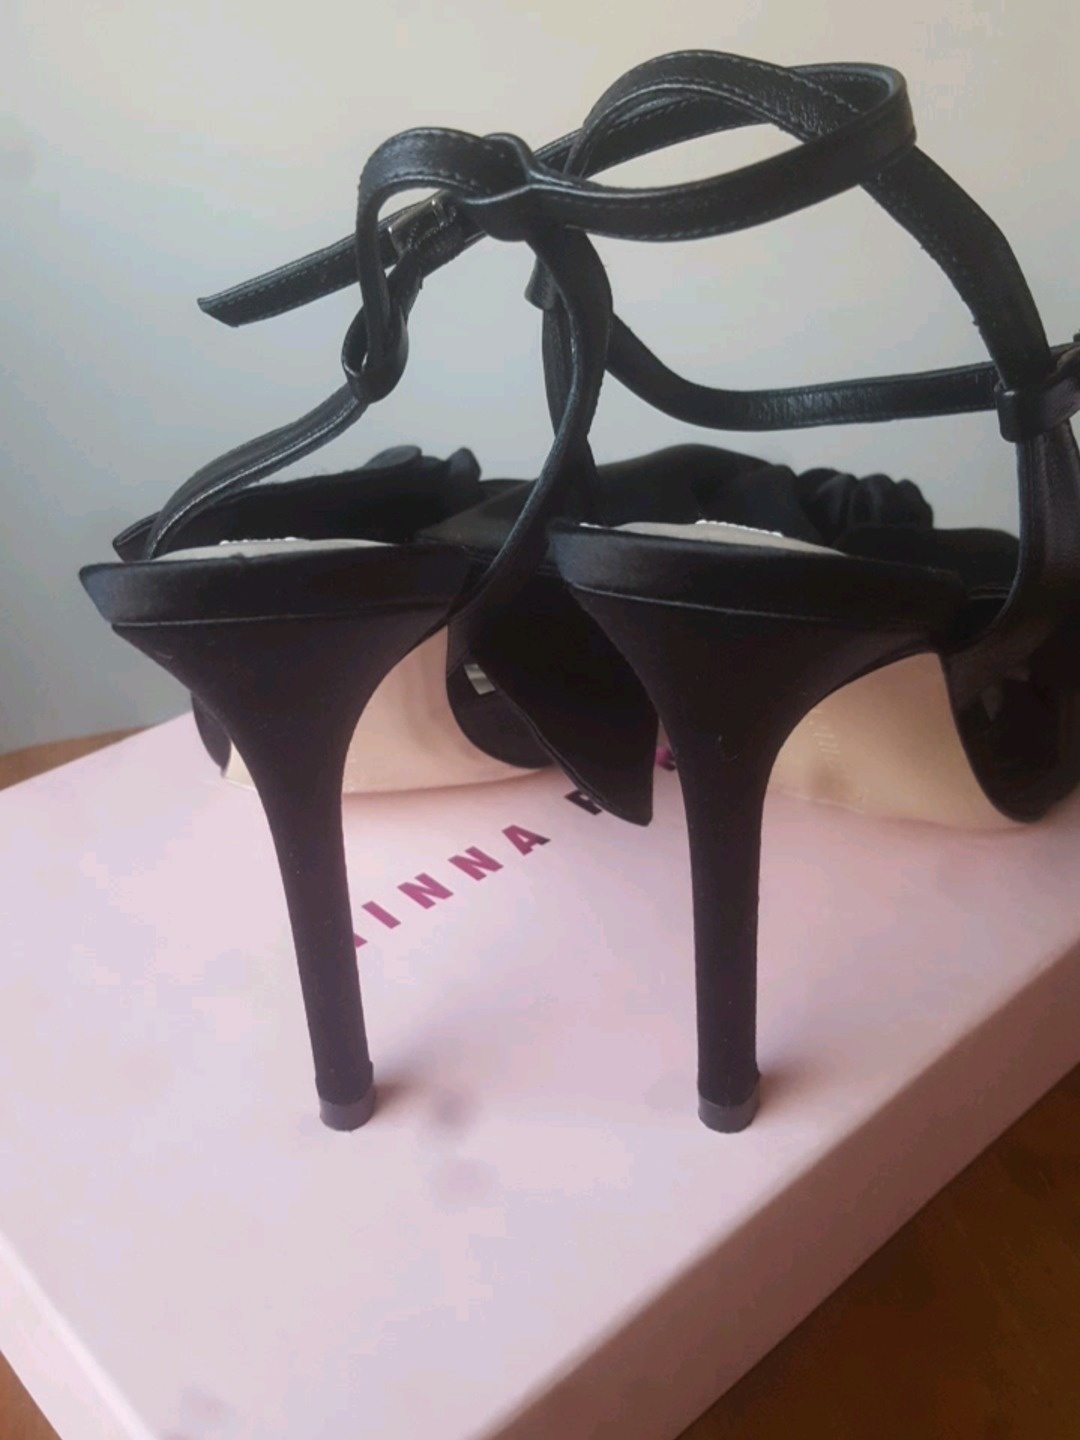 Women's heels & dress shoes - MINNA PARIKKA photo 2